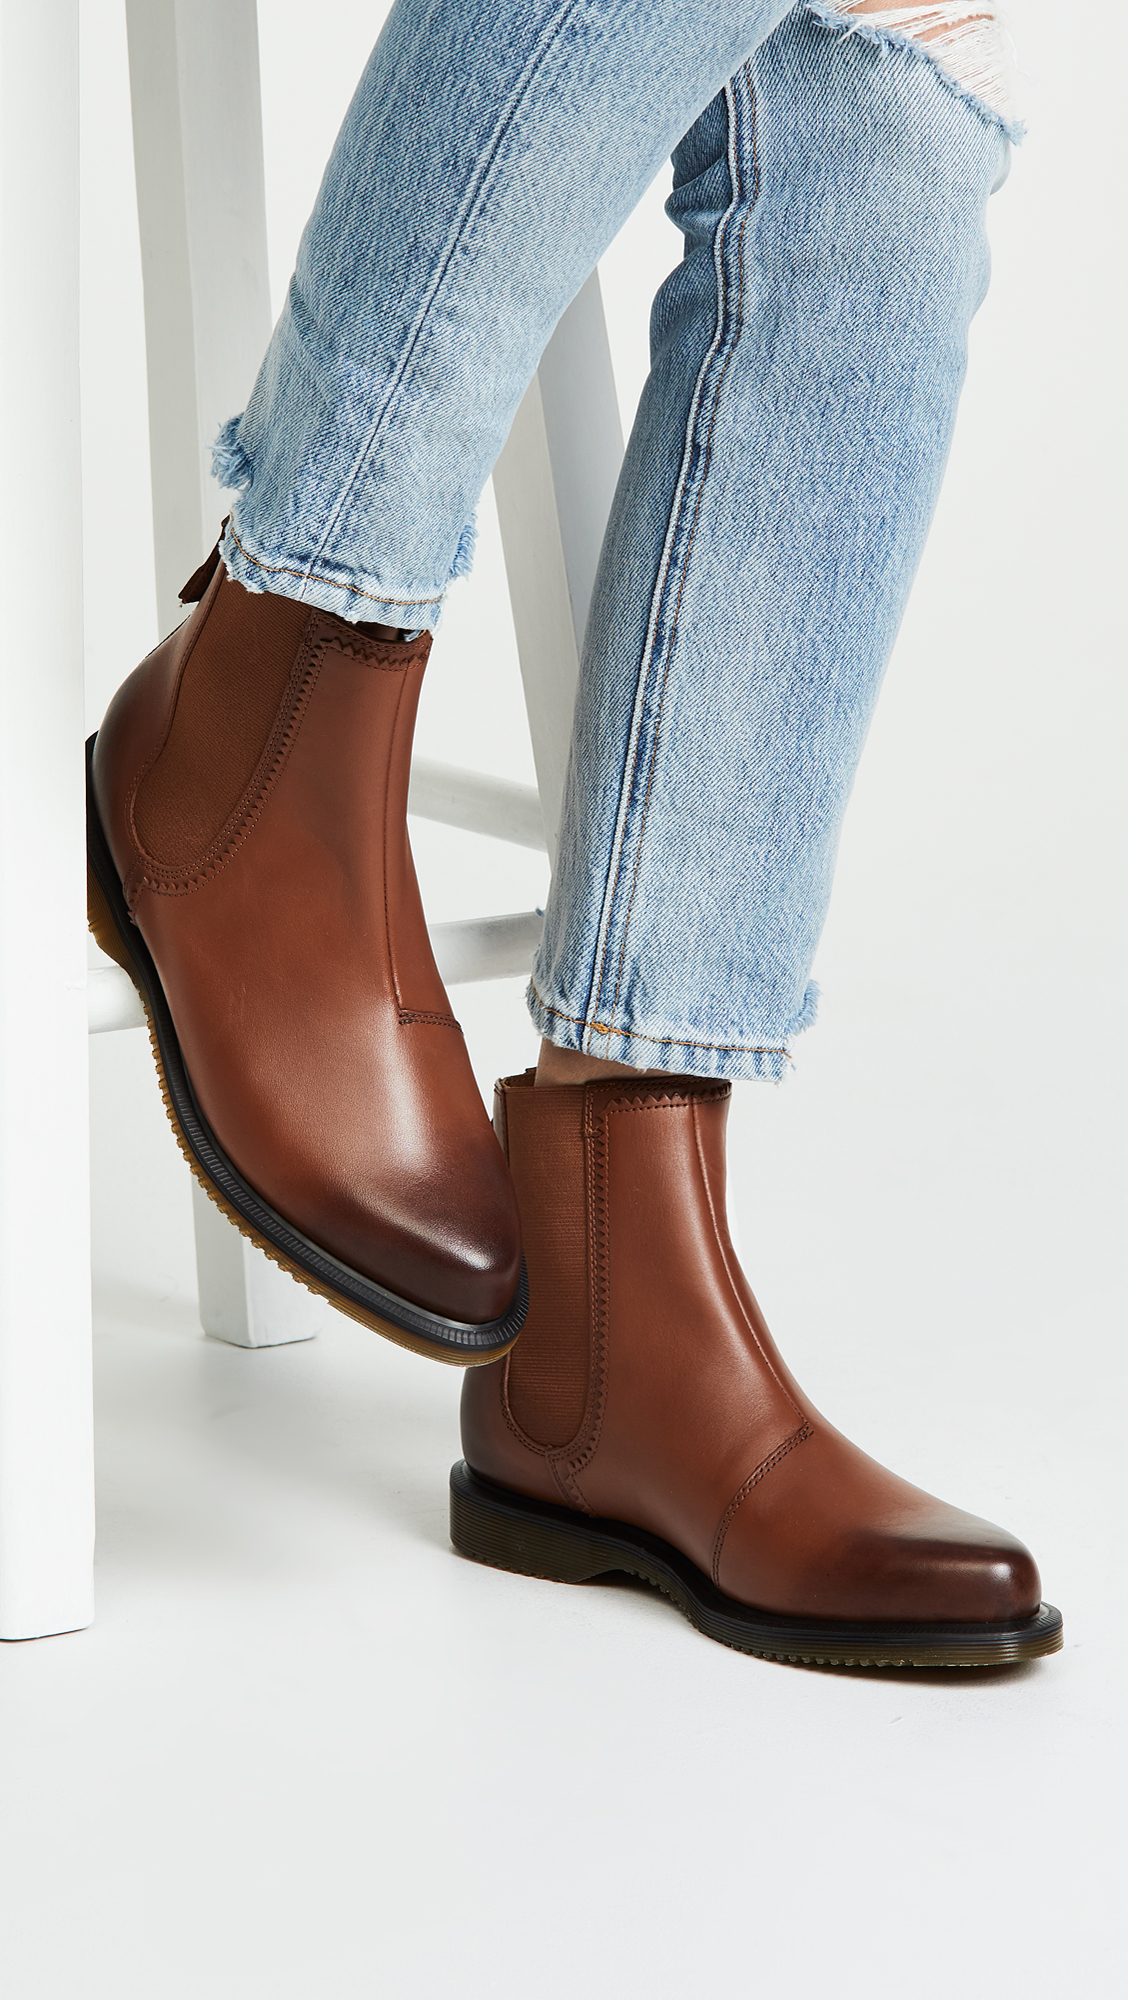 aac71ac3916 Dr. Martens Zillow Temperley Chelsea Boots